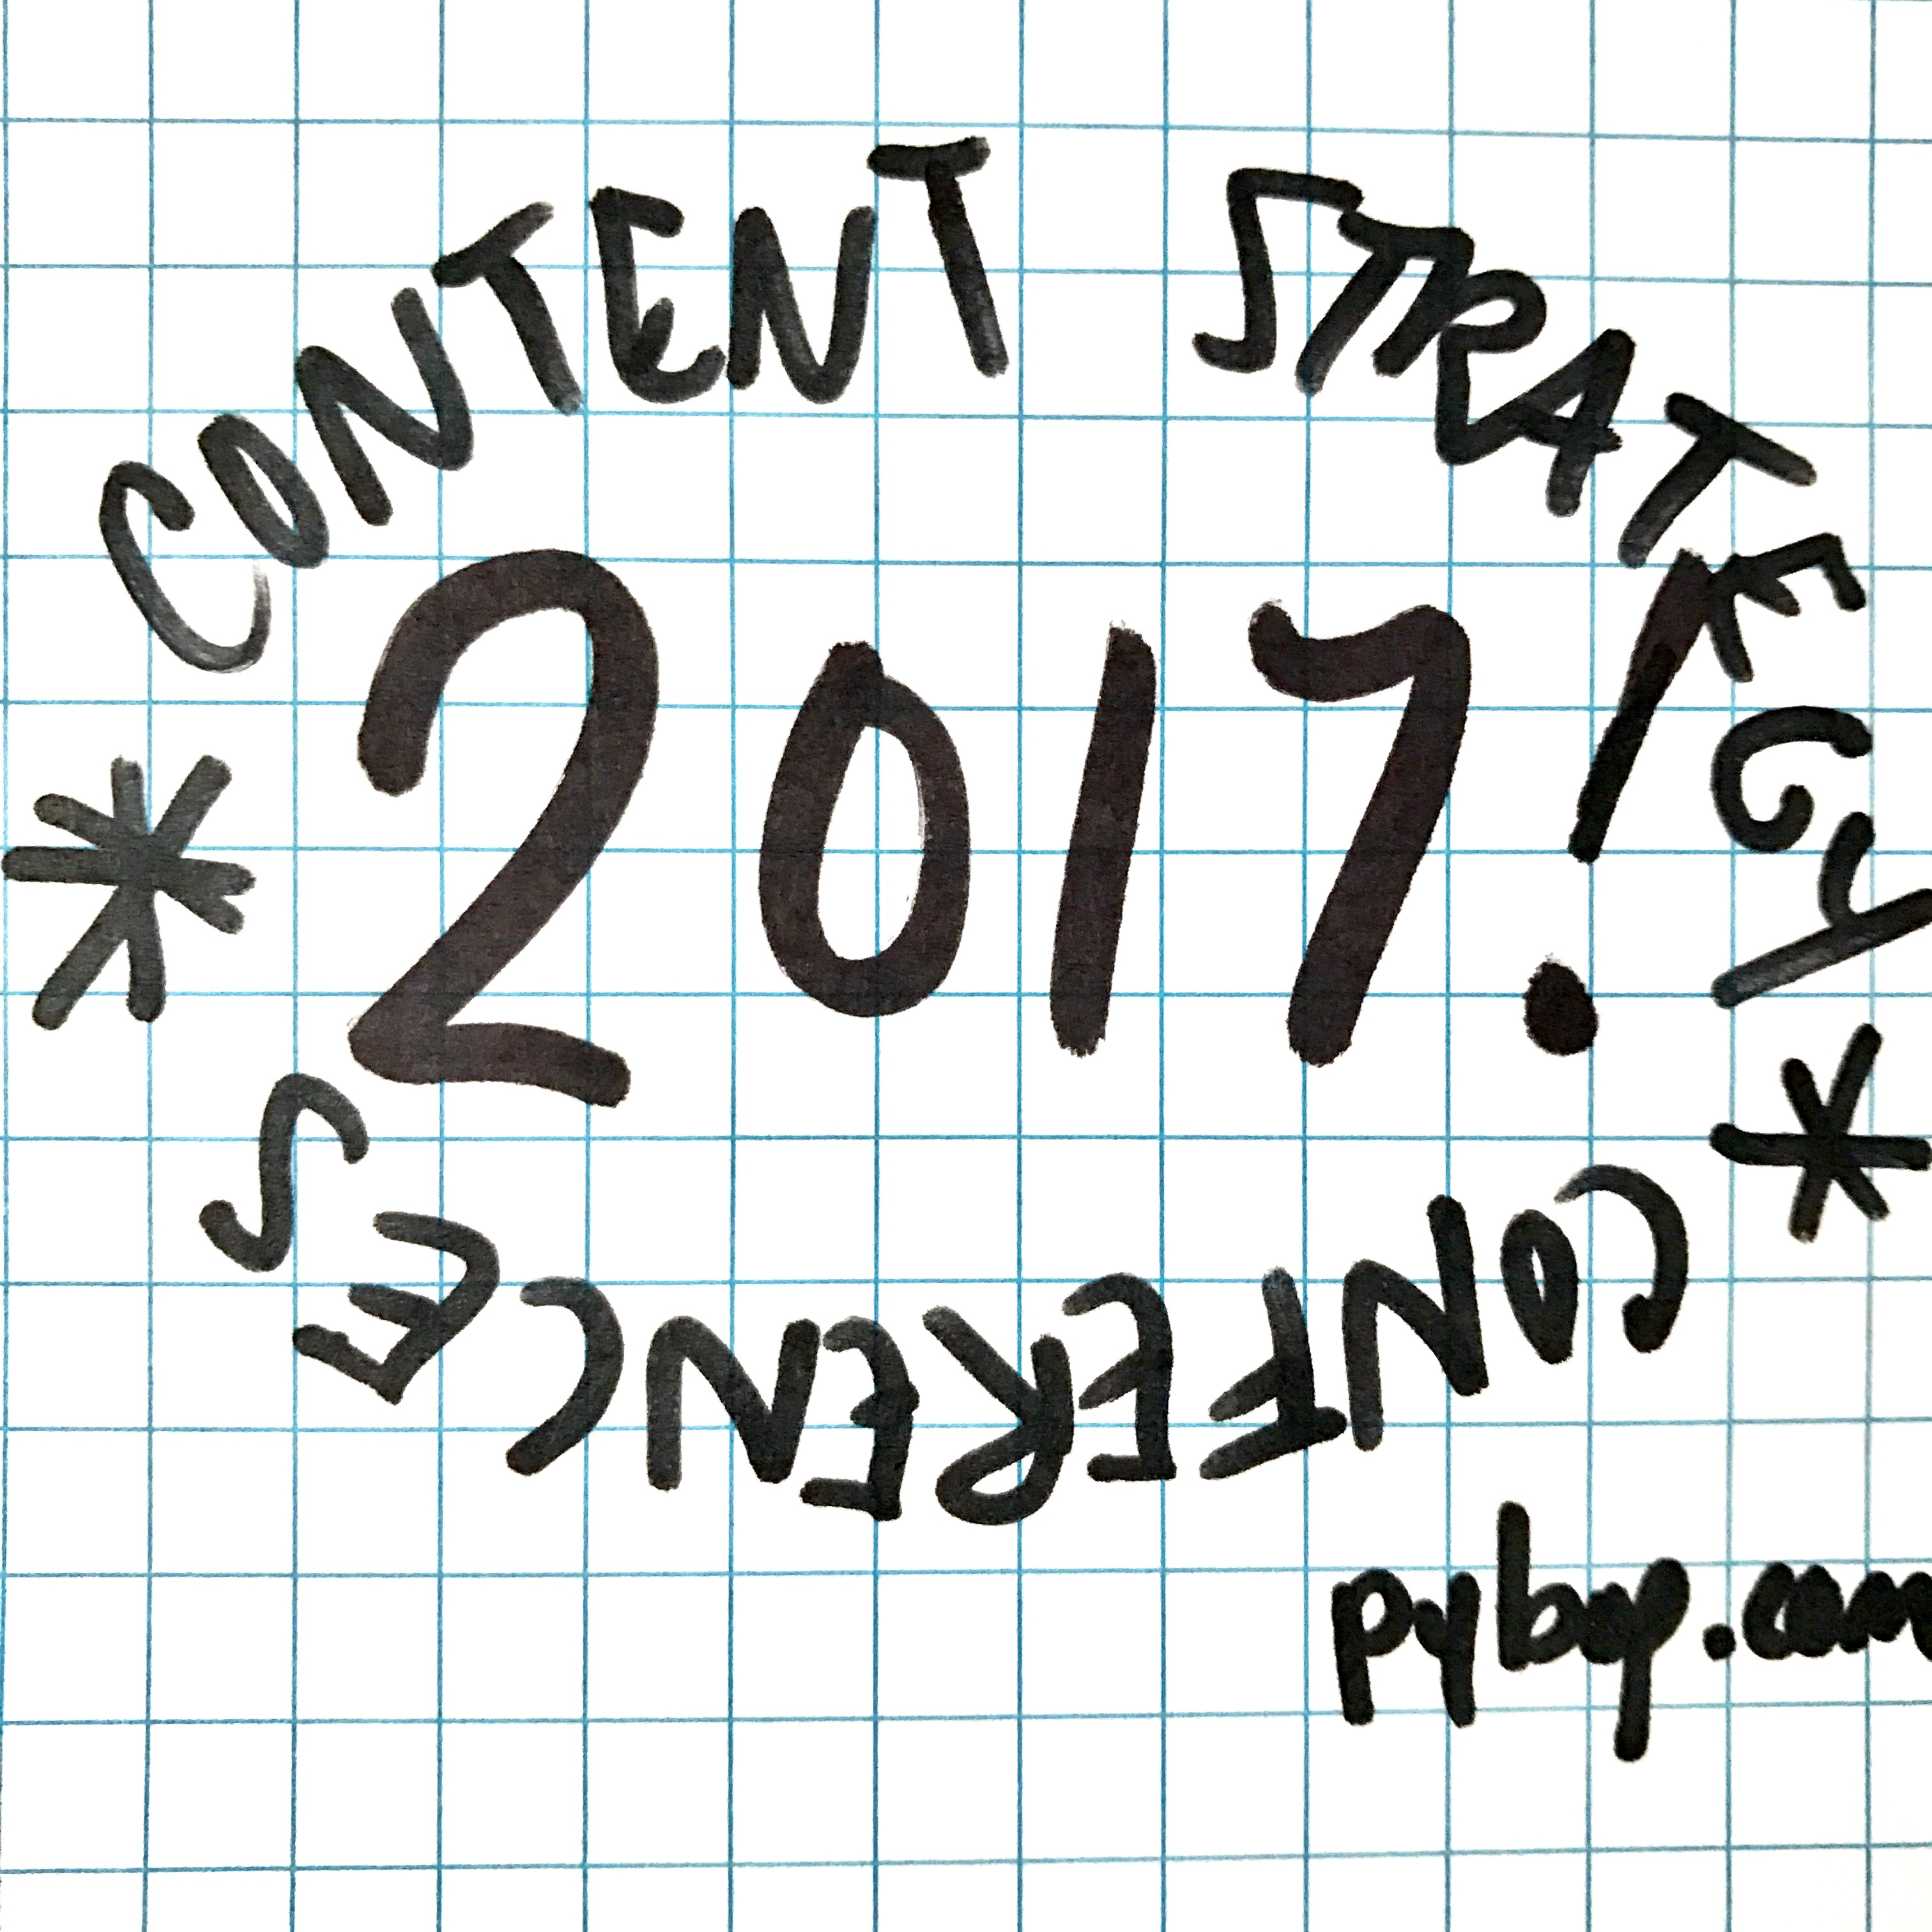 2017 content strategy conferences: which ones are best?